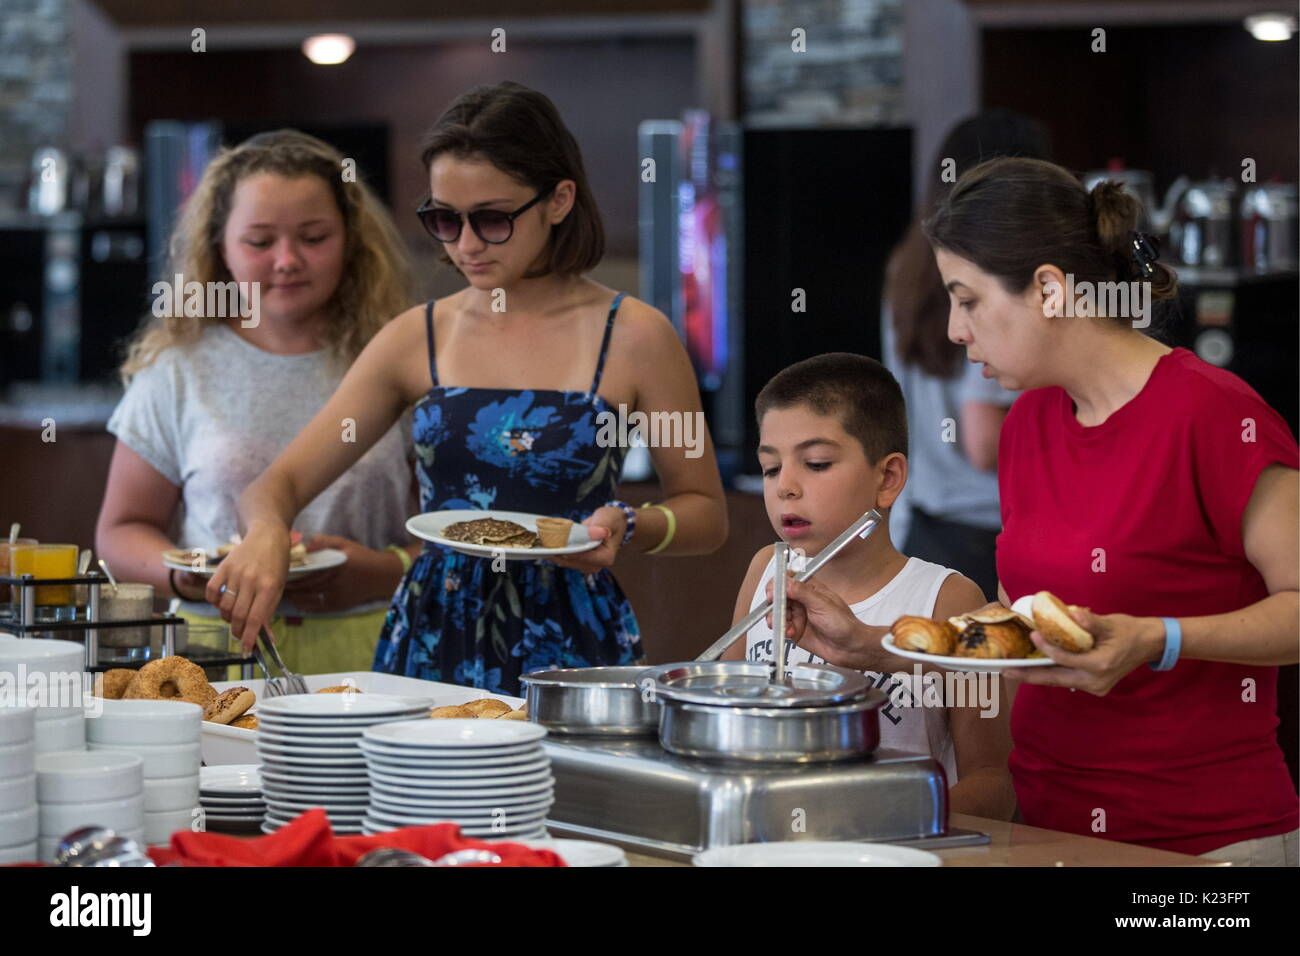 KEMER, TURKEY - AUGUST 26, 2017: Tourists in a buffet at the Meder Resort Hotel. Sergei Bobylev/TASS - Stock Image